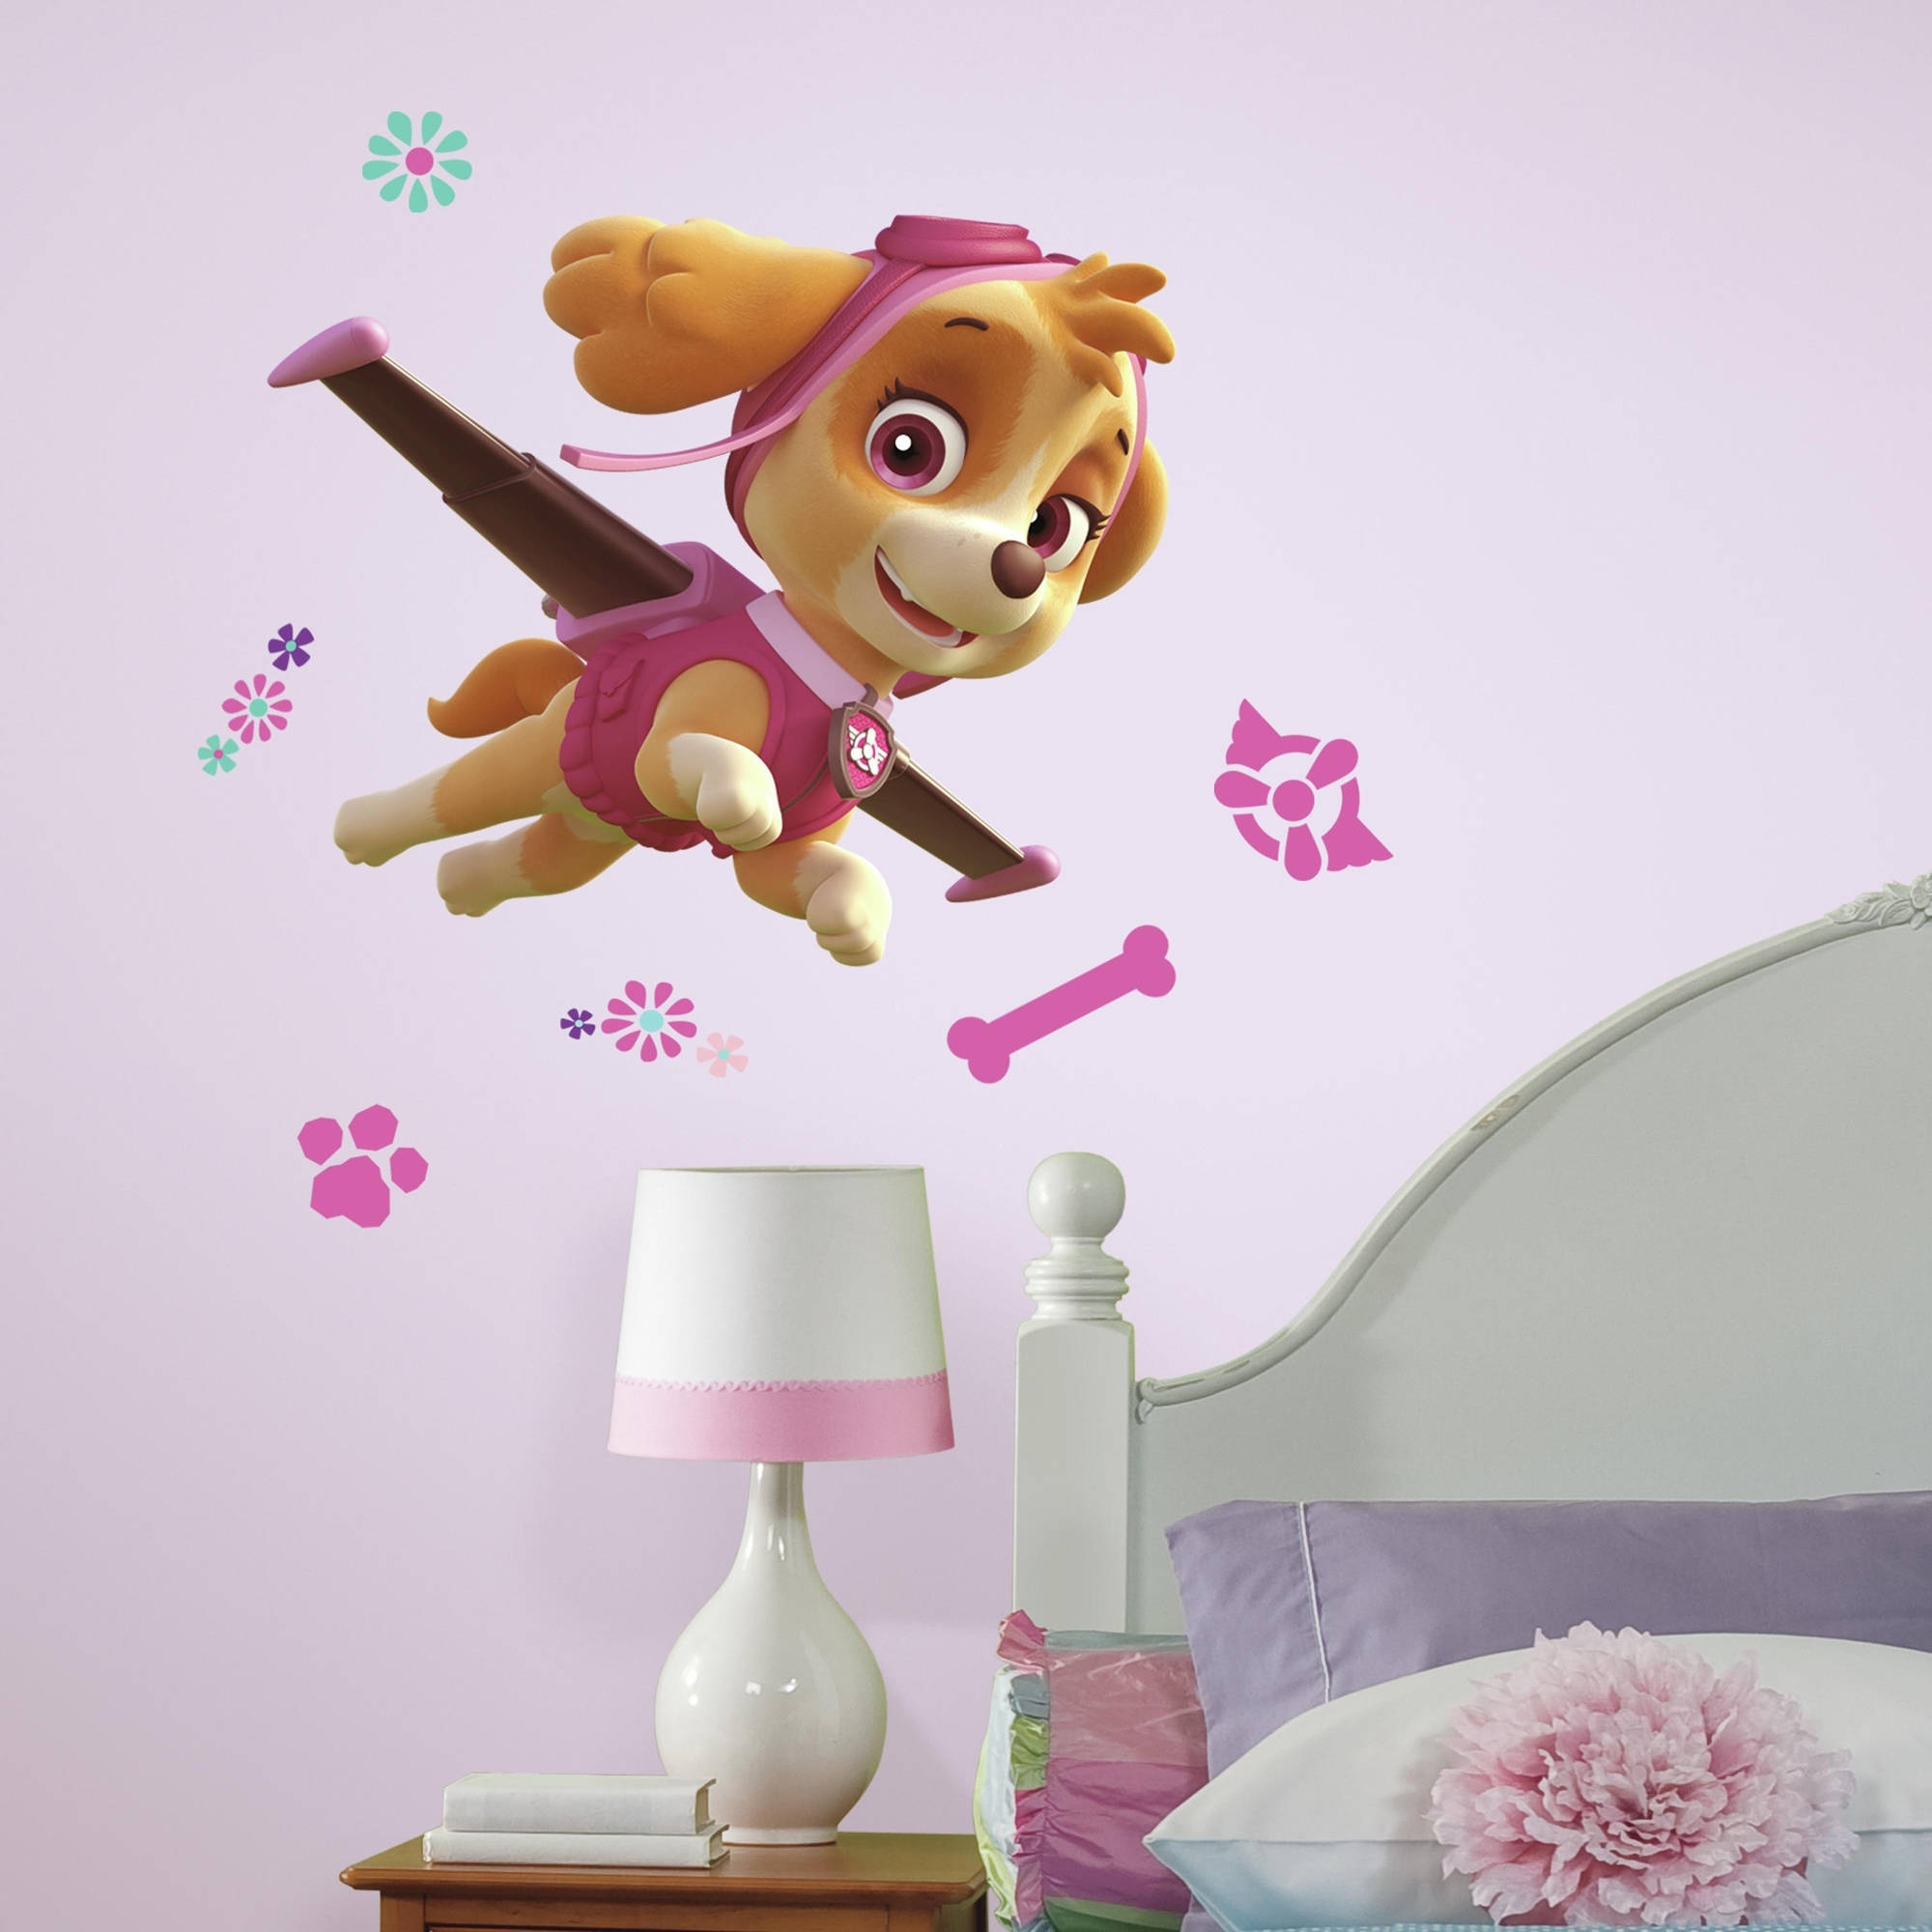 Favorite Preschool Classroom Wall Decals For Roommates Paw Patrol Skye Peel And Stick Giant Wall Decals (View 6 of 15)